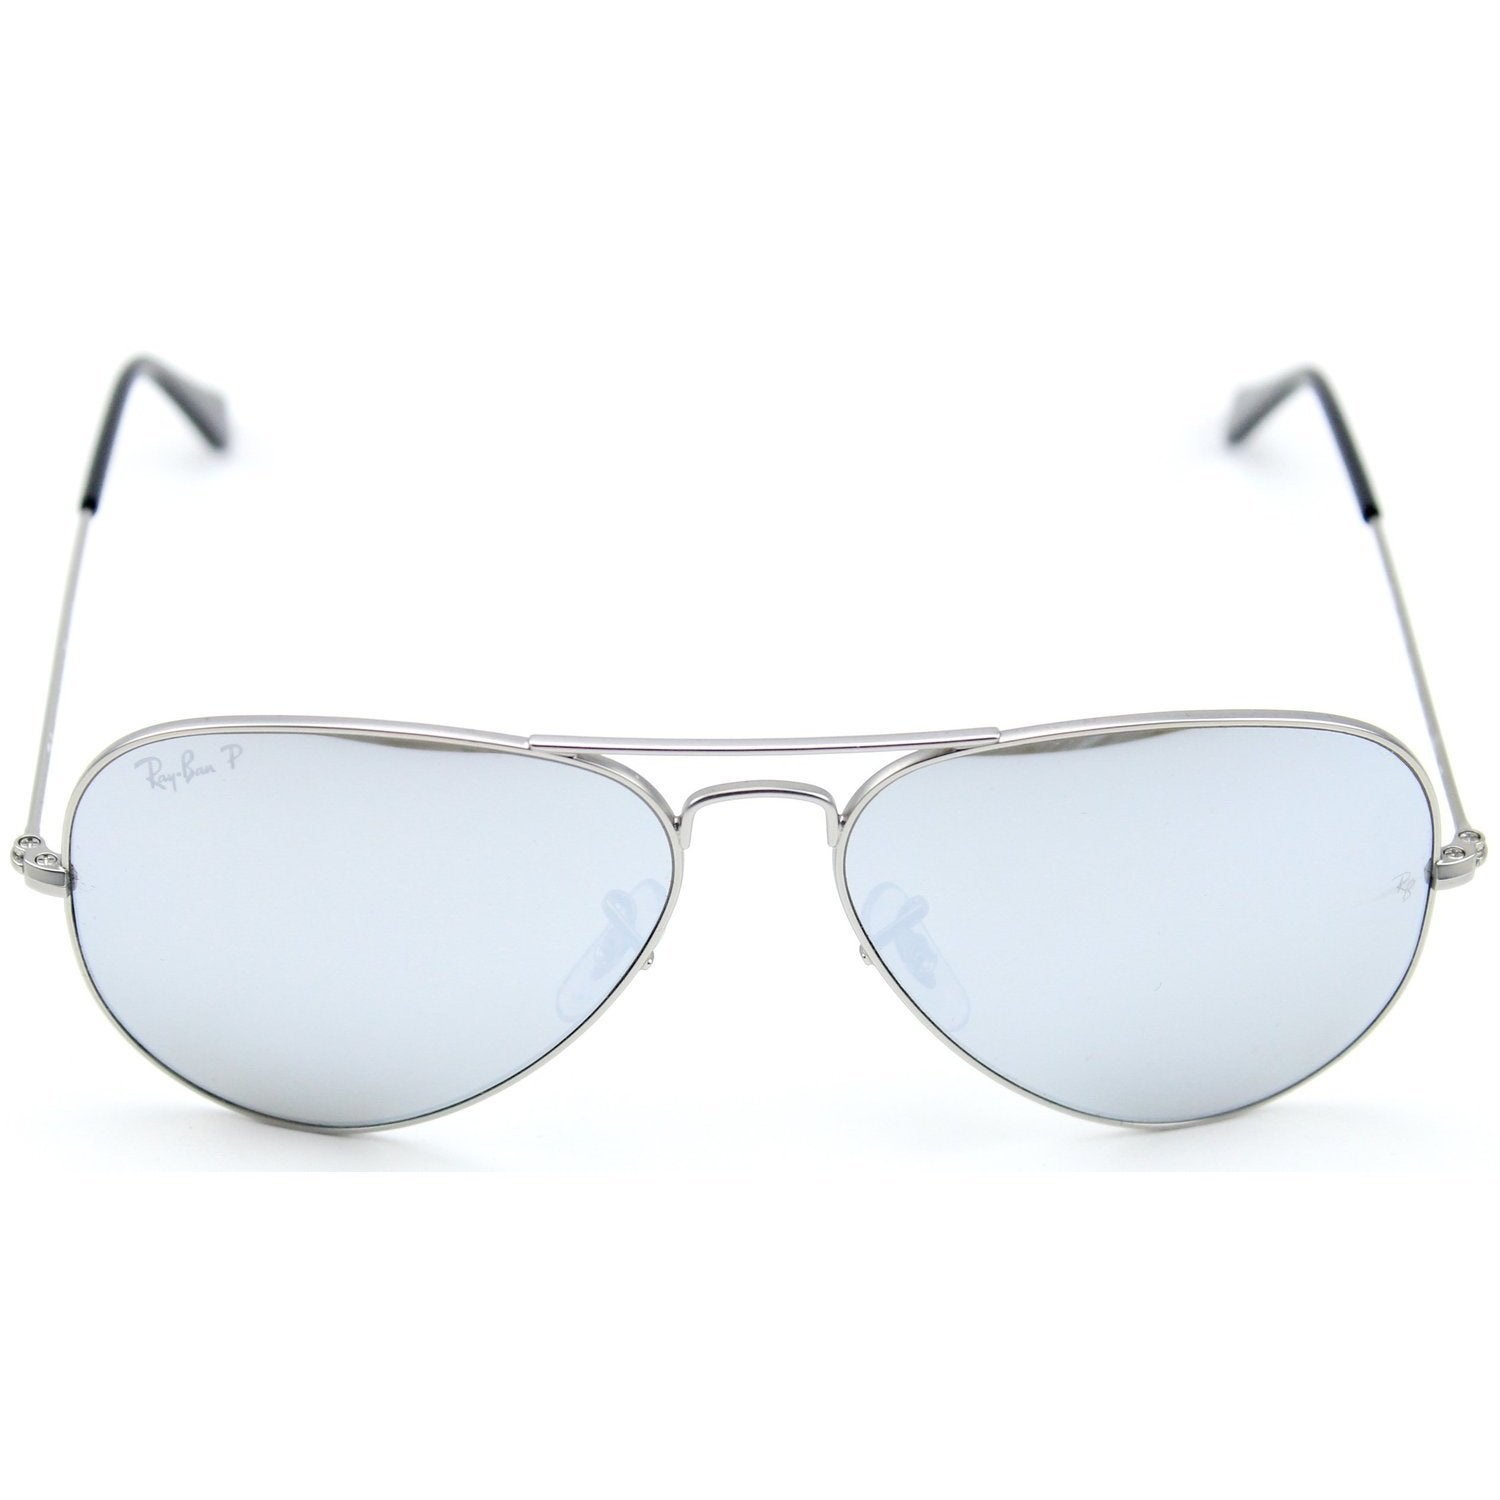 79725caf56 Shop Ray-Ban RB3025 019 W3 Aviator Mirror Silver Frame Polarized Grey 58mm  Lens Sunglasses - Free Shipping Today - Overstock - 11325233